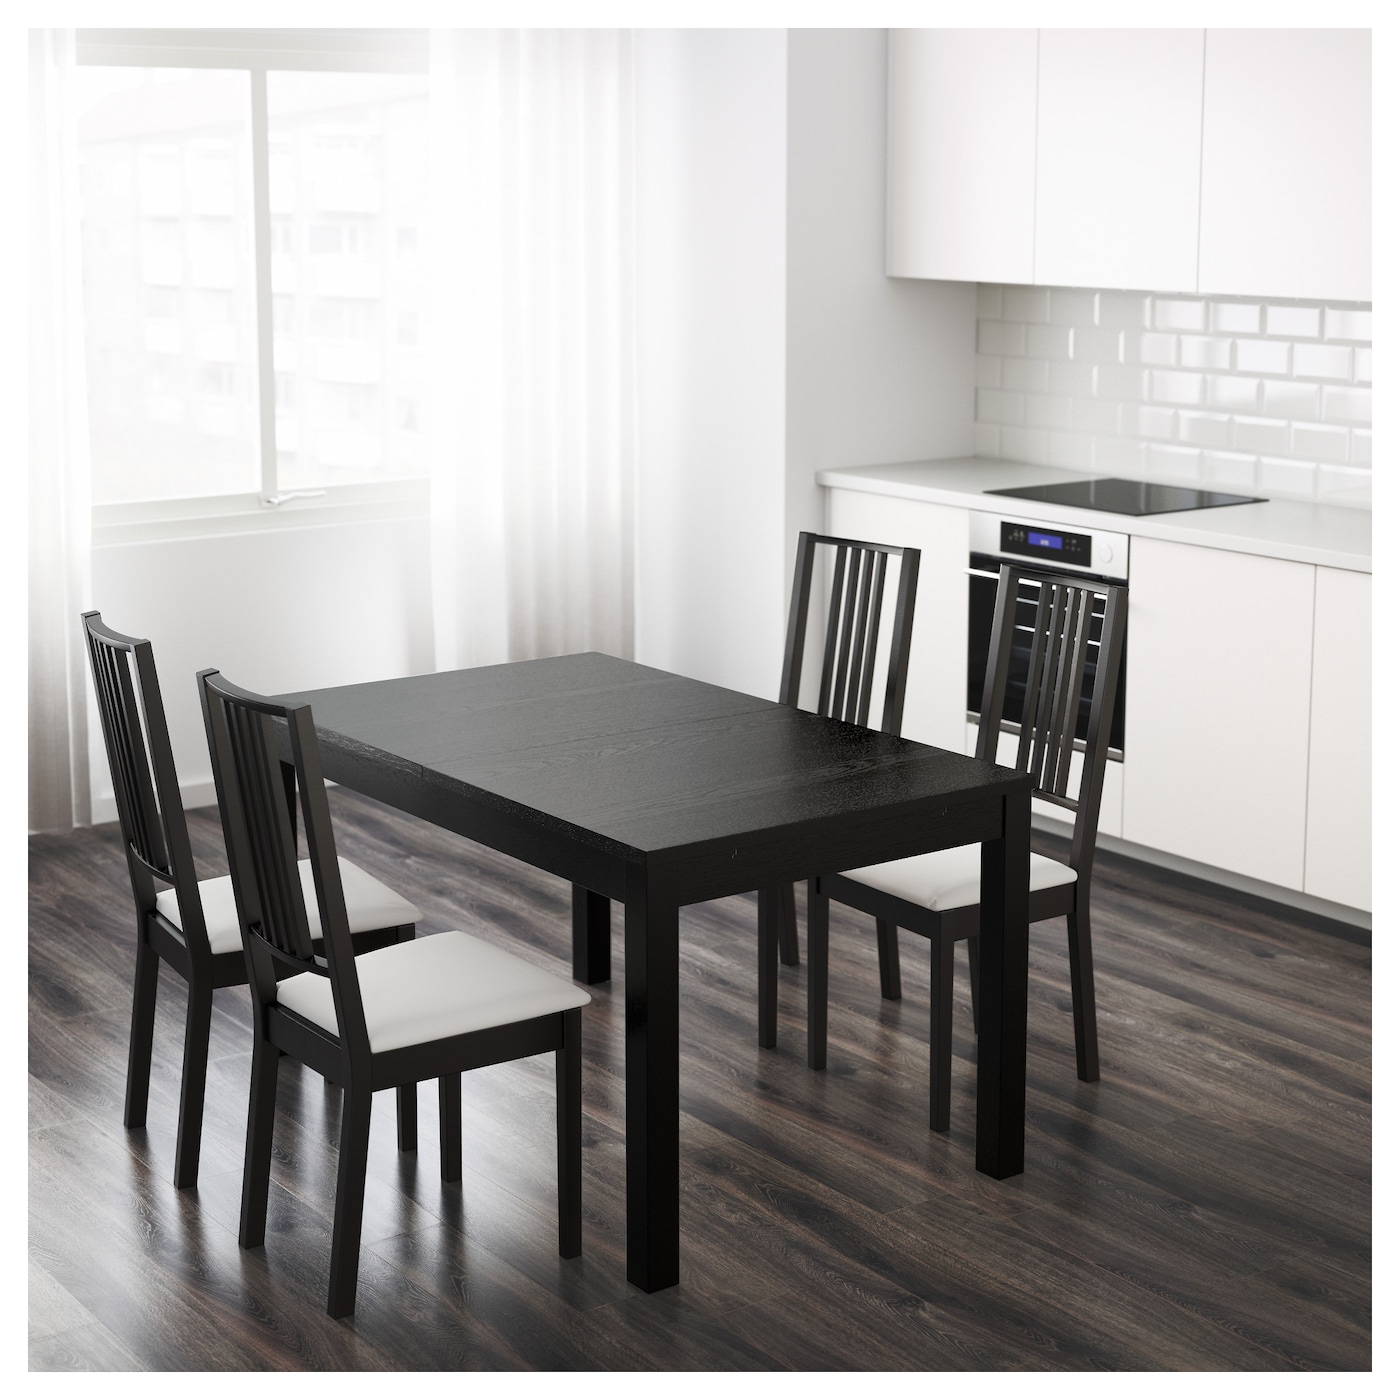 bjursta extendable table brown black 140 180 220 x 84 cm ikea. Black Bedroom Furniture Sets. Home Design Ideas